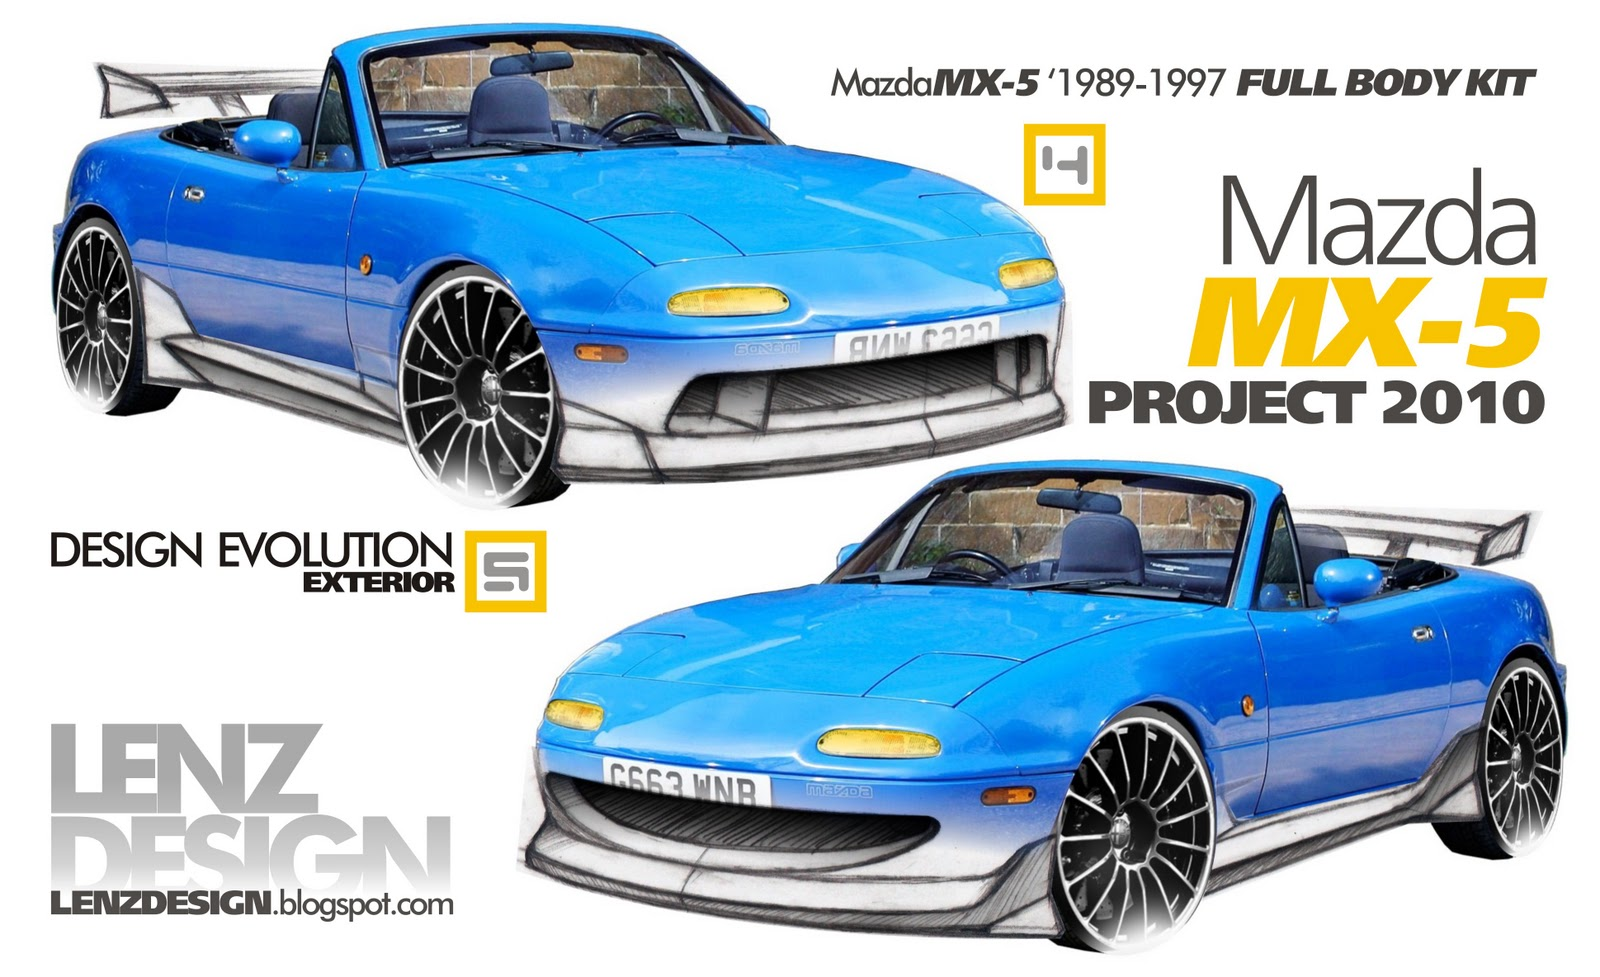 mazda mx 5 tuning project 2010 by lenzdesign. Black Bedroom Furniture Sets. Home Design Ideas